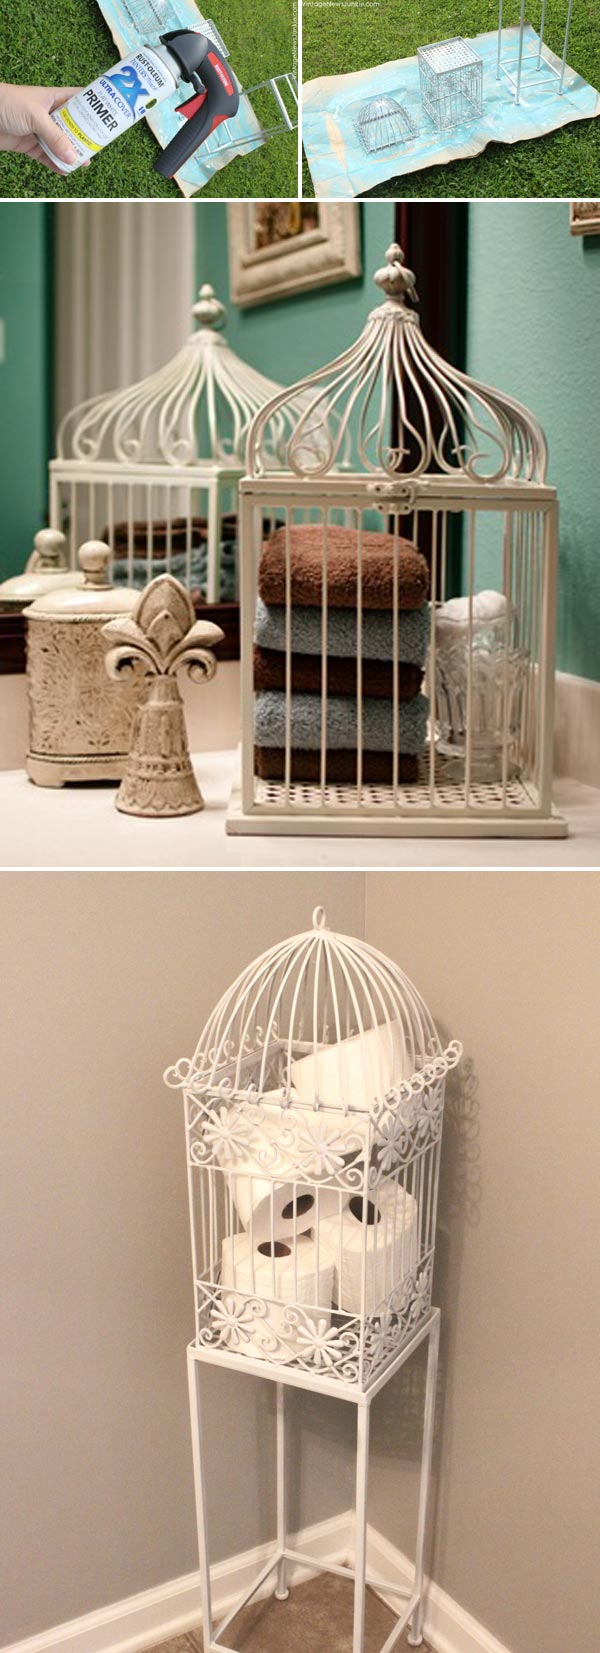 Put a birdcage in your bathroom for creatvie towel or toilet paper storage